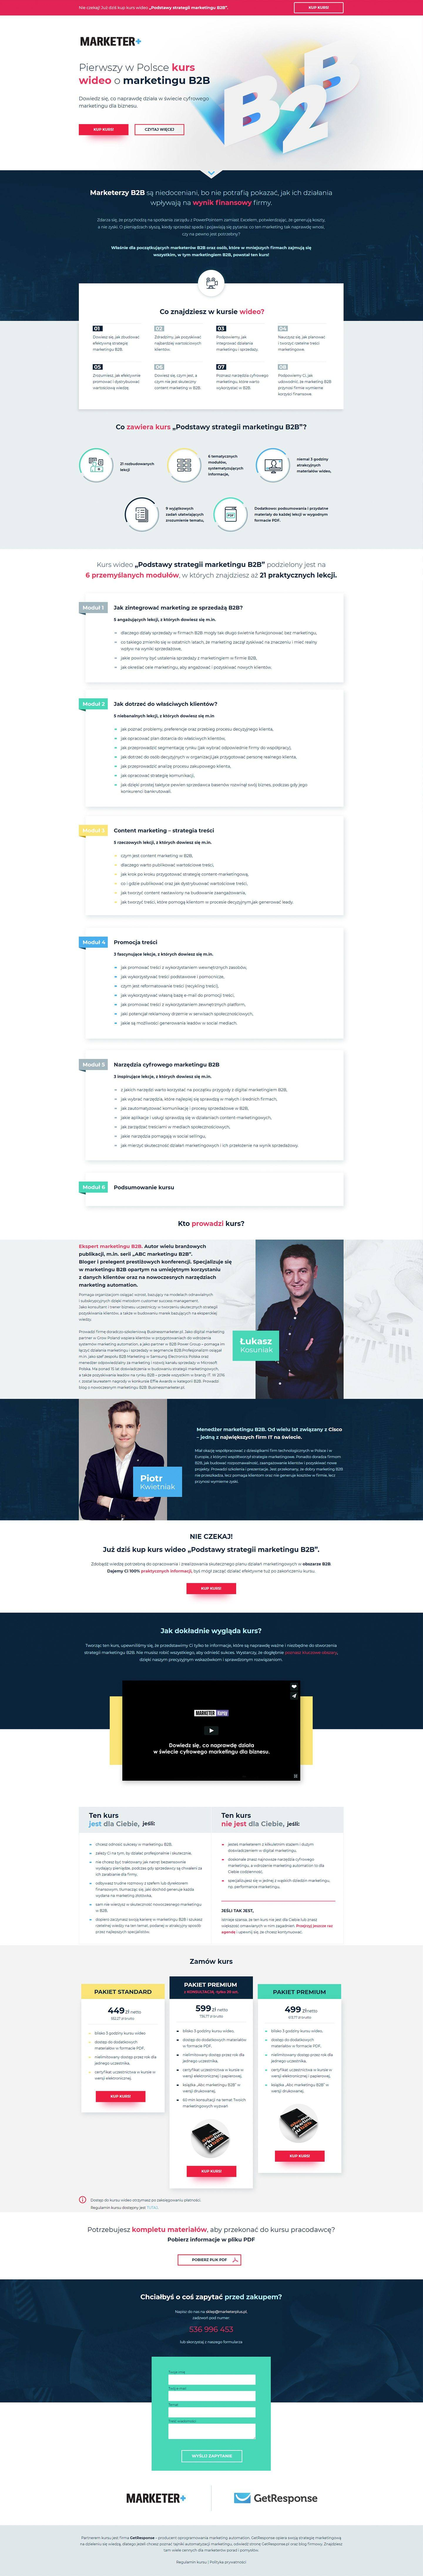 Marketer+ Marketing Course Landing Page